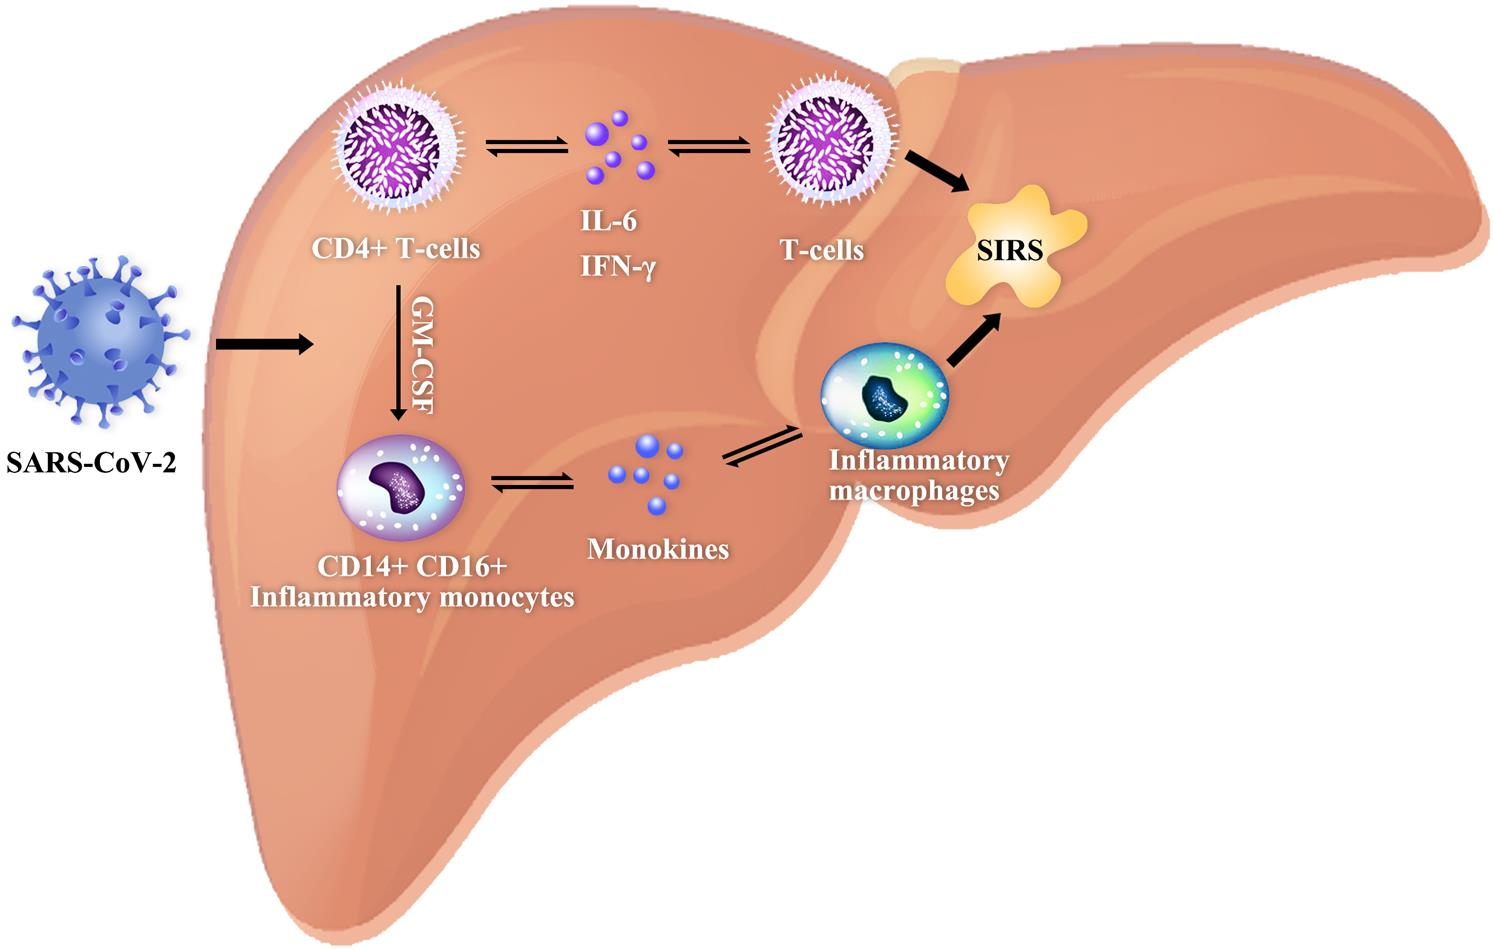 """<bold>Schematic diagram showing the systemic inflammatory response syndrome induced by SARS-CoV2.</bold> After the SARS-CoV-2 infection, pathogenic T cells are rapidly activated, producing granulocyte-macrophage colony-stimulating factor (GM-CSF), interleukin (IL)-6 and other proinflammatory factors. GM-CSF will further activate CD14<sup>+</sup>CD16<sup>+</sup> inflammatory monocytes, producing a larger amount of IL-6 and other proinflammatory factors, and thereby inducing an inflammatory """"storm"""" that leads to immune damage to other organs, such as the lungs and the liver. Both IL-6 and GM-CSF are two key proinflammatory factors that trigger the inflammatory """"storm"""" in patients with COVID-19."""